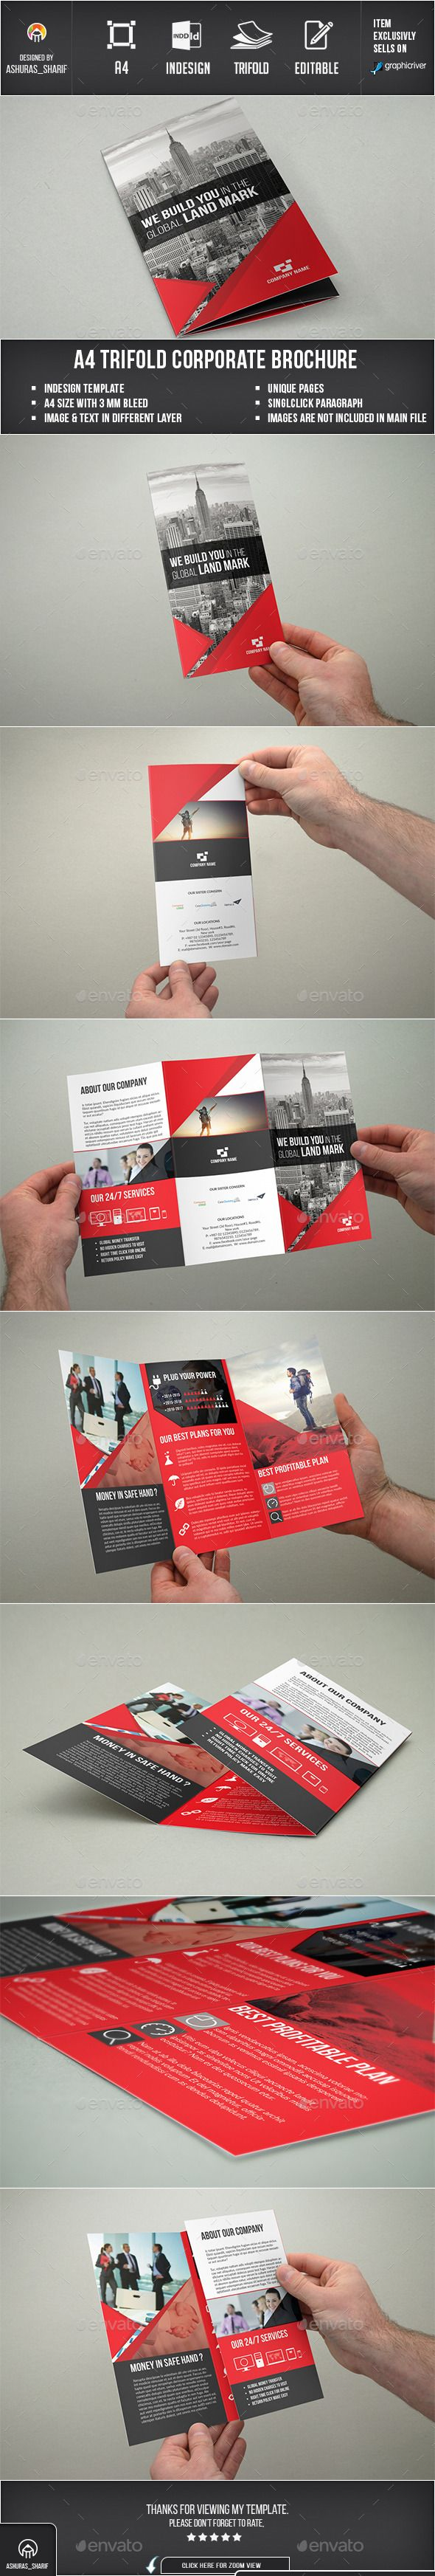 best 25 marketing materials ideas on pinterest